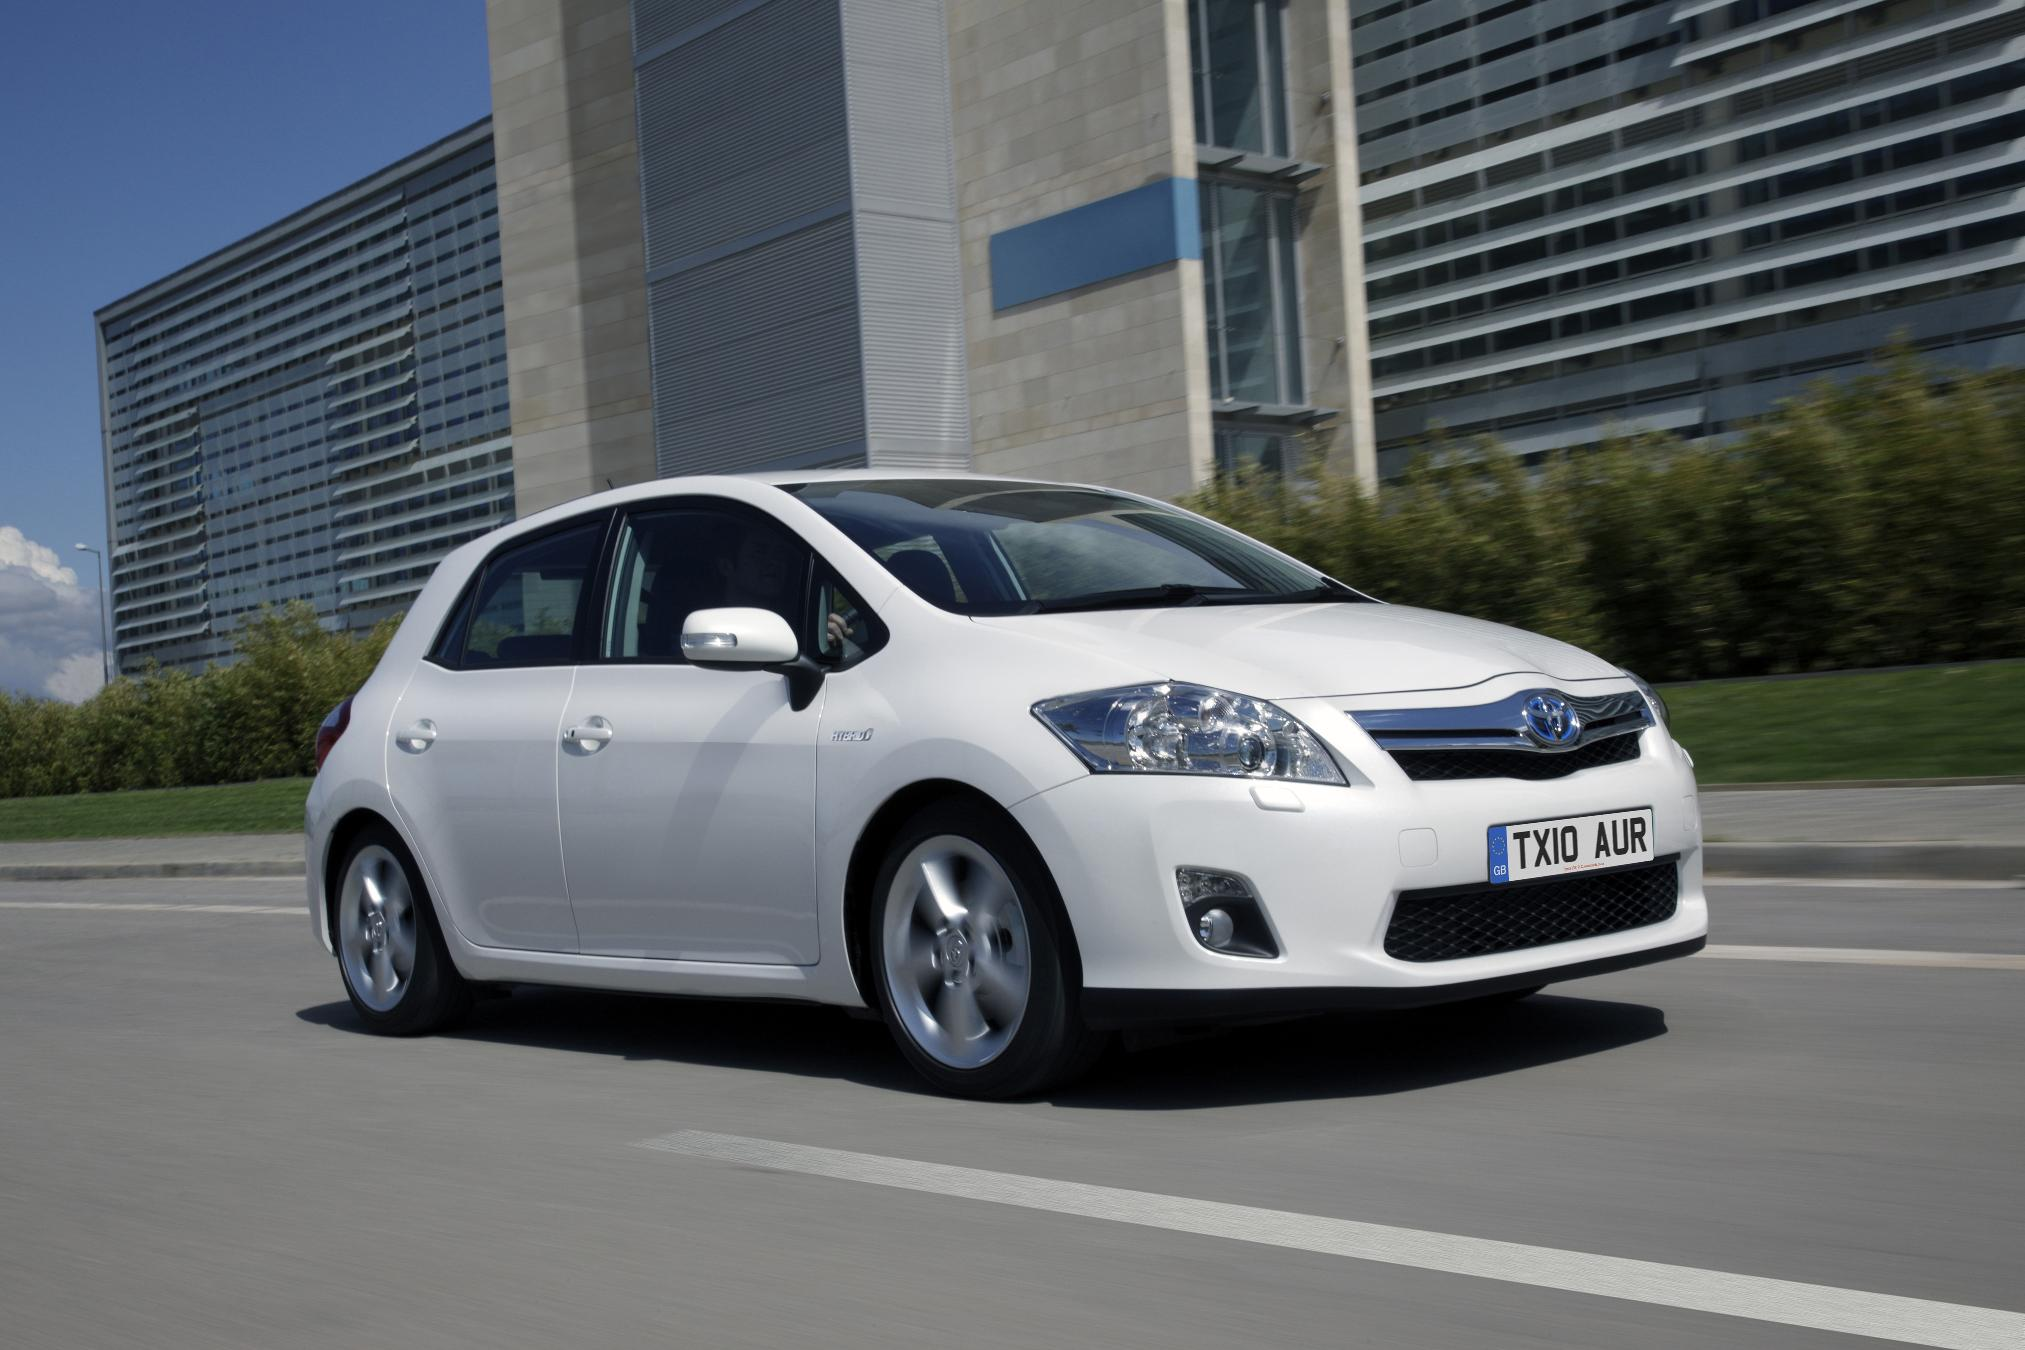 auris hybrid is clever but will it save you money wheel world reviews. Black Bedroom Furniture Sets. Home Design Ideas